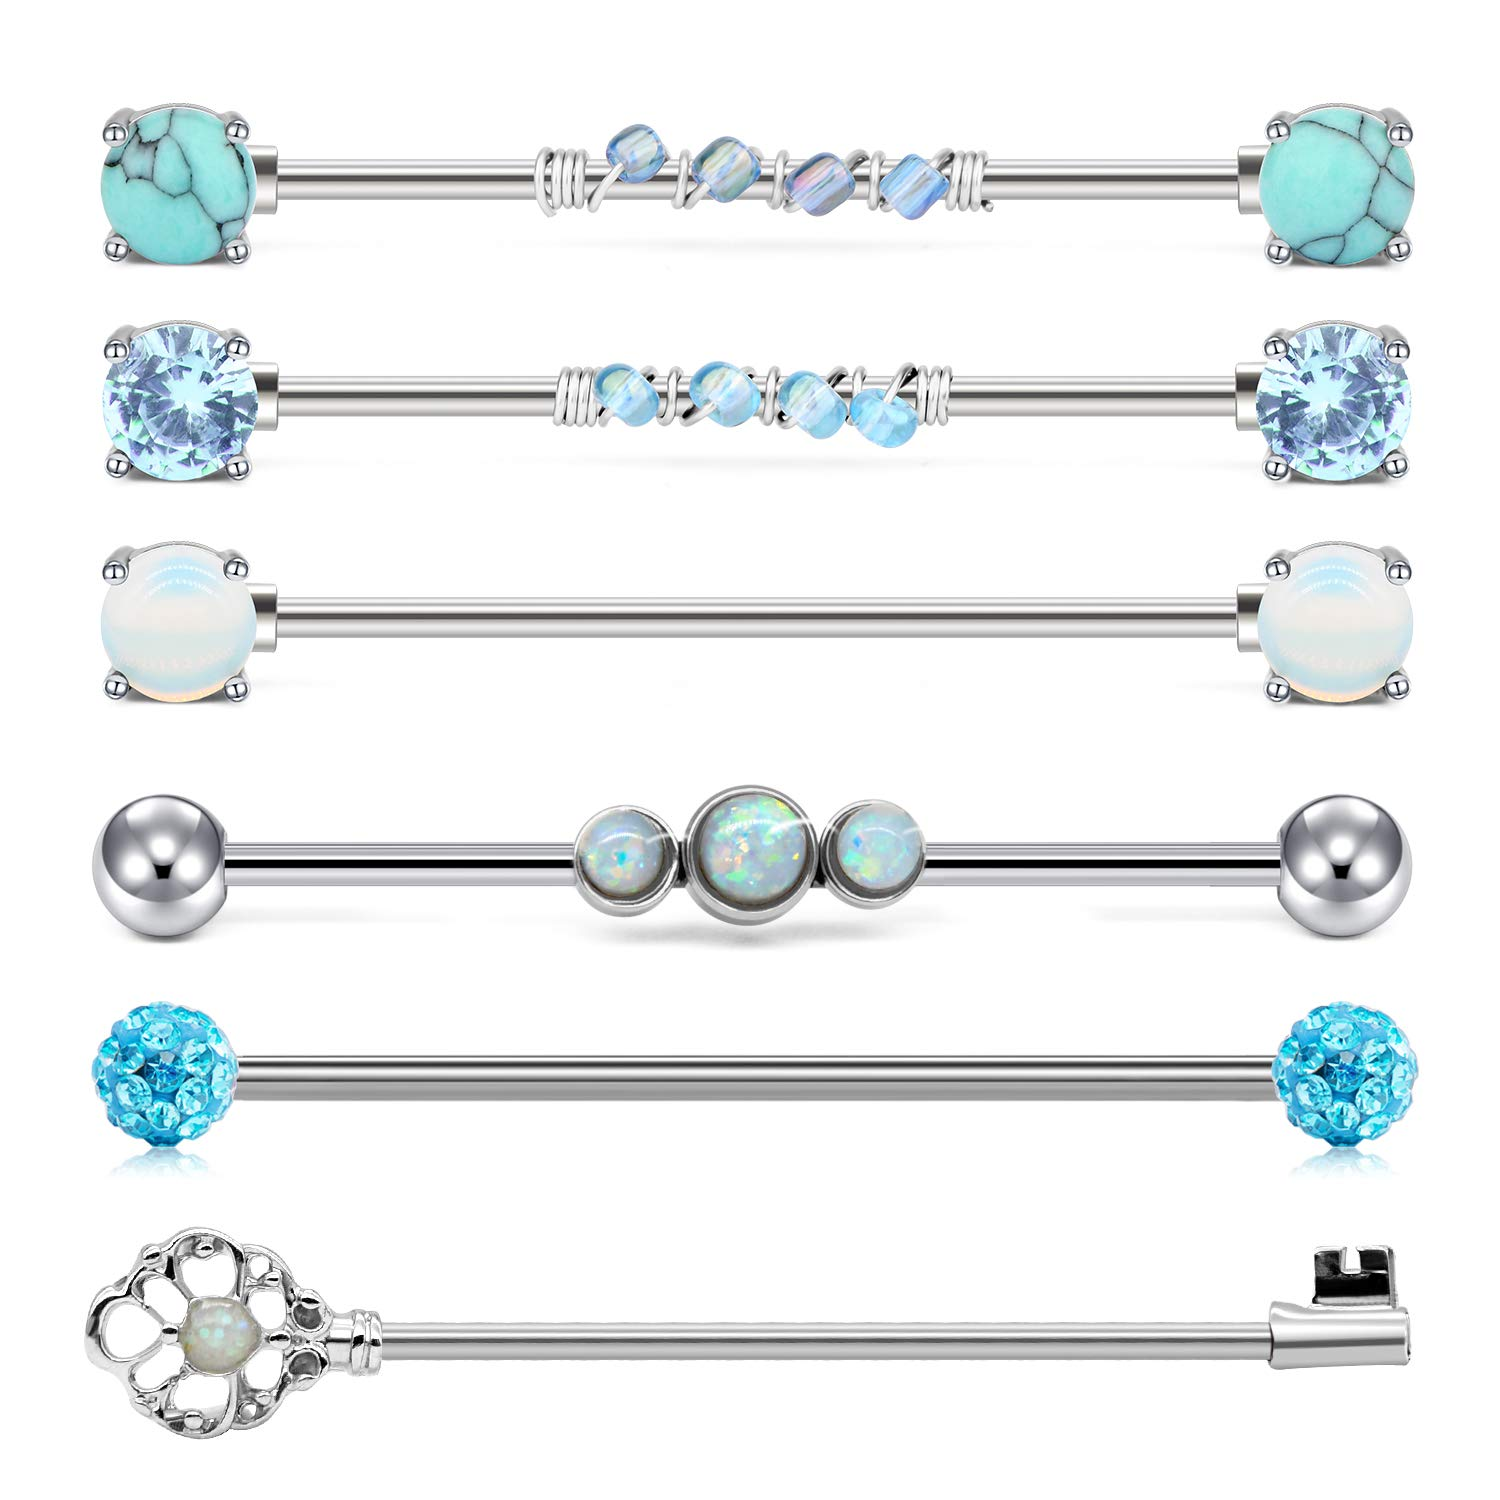 QWALIT Industrial Barbell 14G Cartilage Earrings Surgical Stainless Steel Scaffold Piercings Arrow Turquoise Industrial Piercing Jewelry Bar 38mm 35mm for Women Men by QWALIT